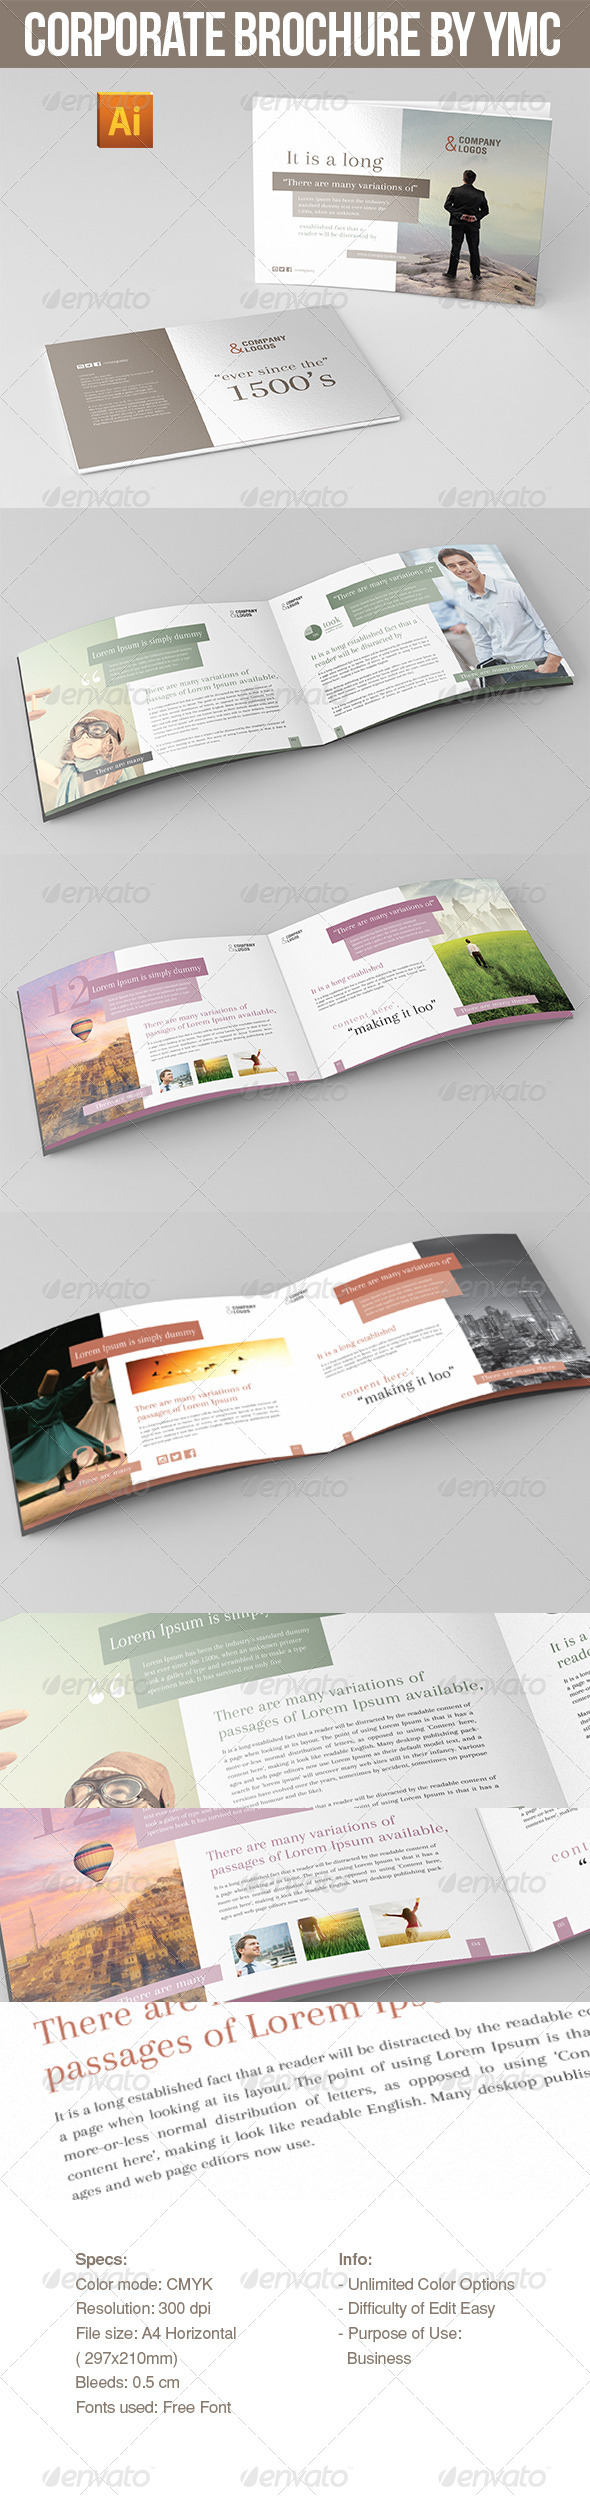 GraphicRiver Corporate Brochure By NYC 6939473